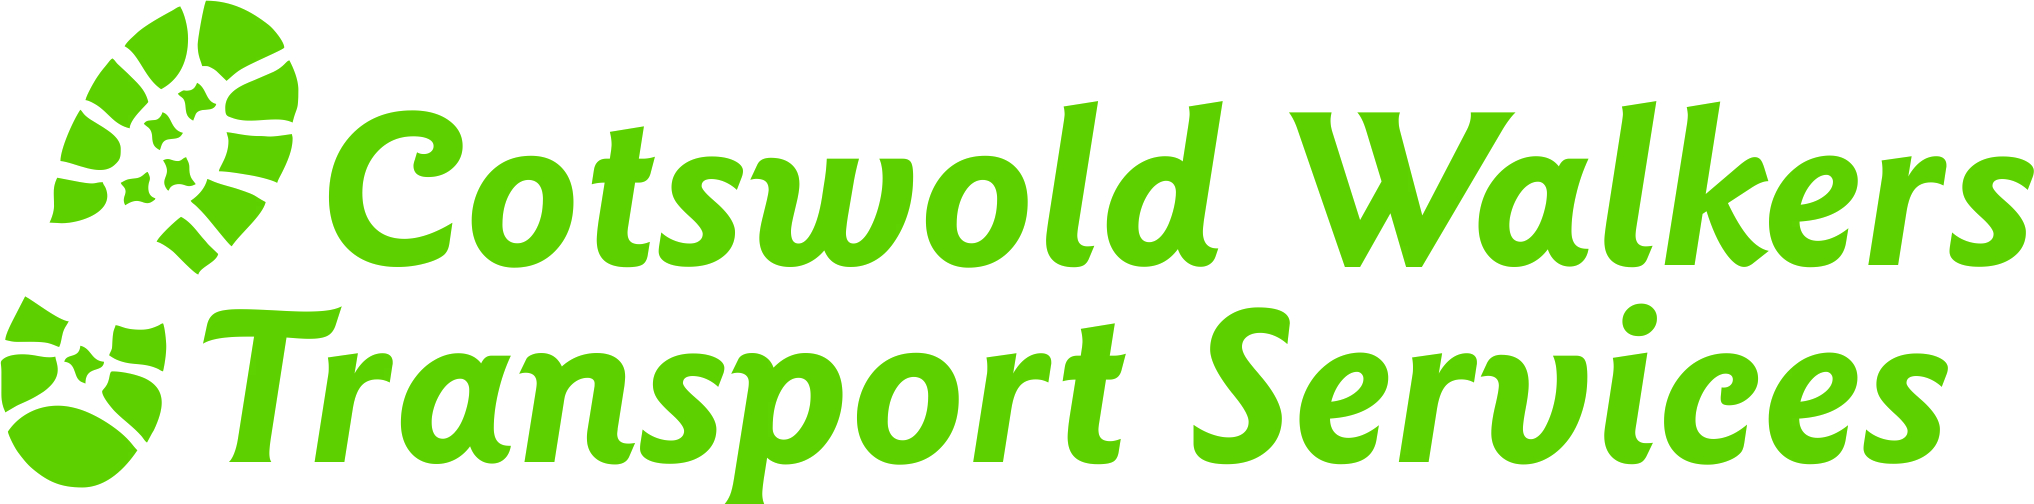 Cotswold Walkers Transport Services